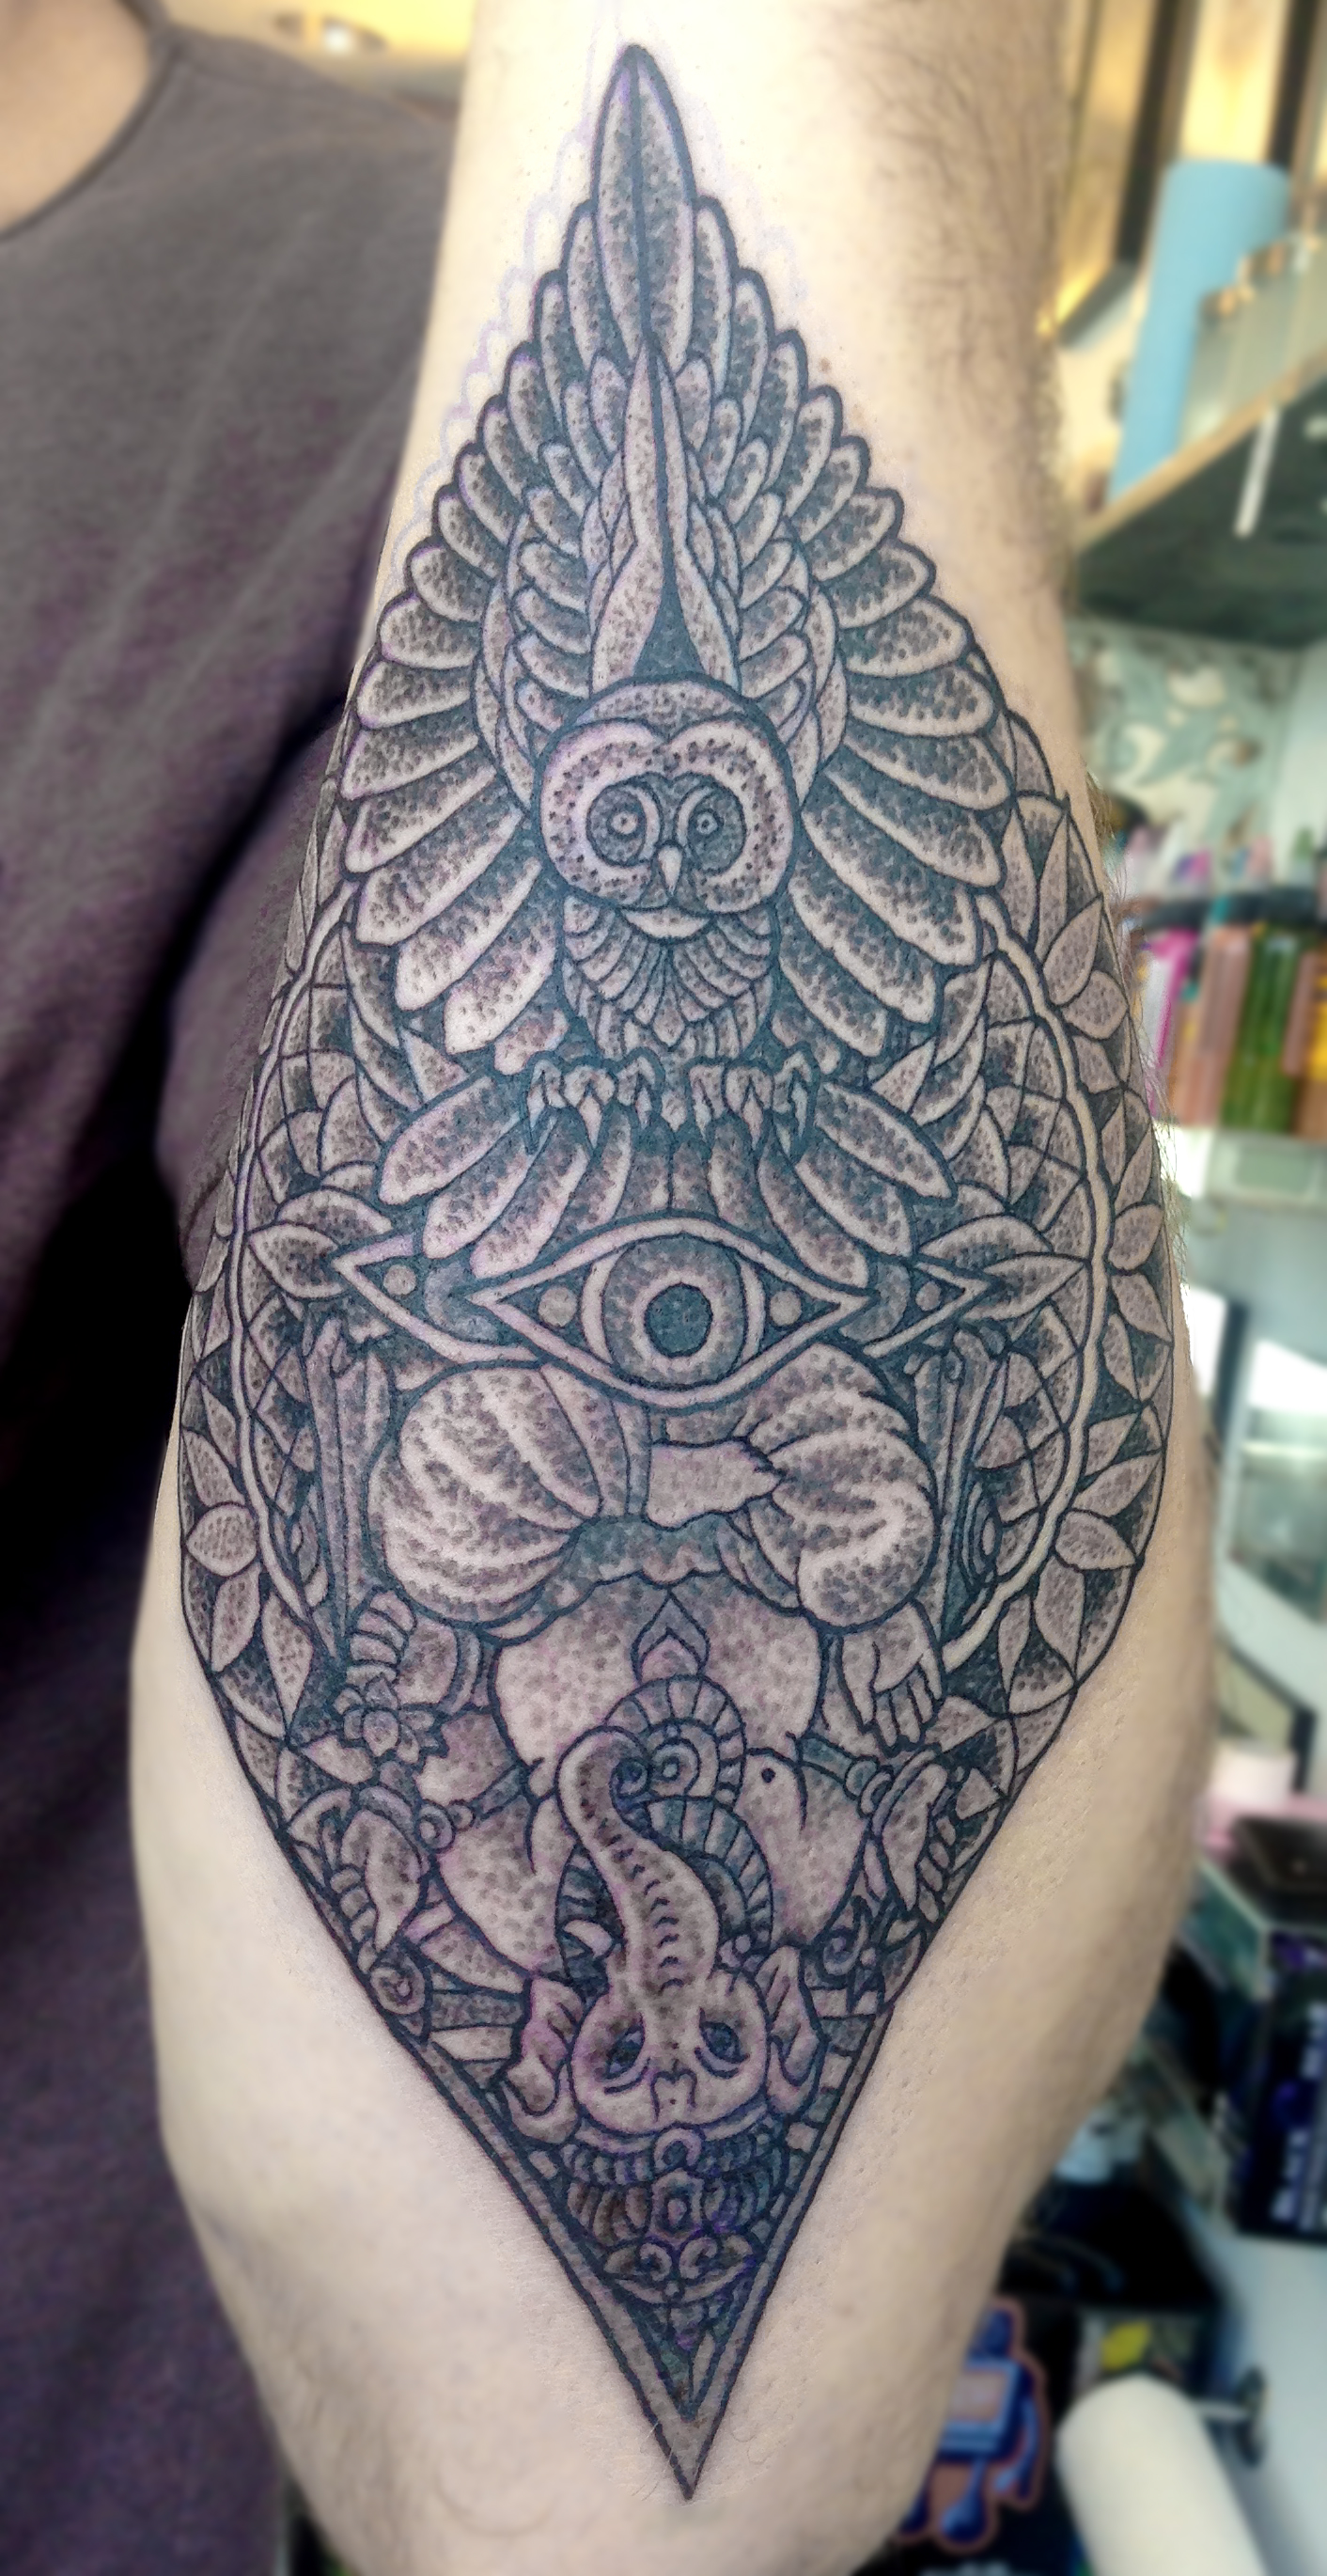 Victoria, BC Tattoo Studio - Paradigm Tattoo Company - Tattoo Artist - Cohen Floch - Vancouver Island - Tattoo Shop - Japanese - Mandala - Traditional - Tattoos